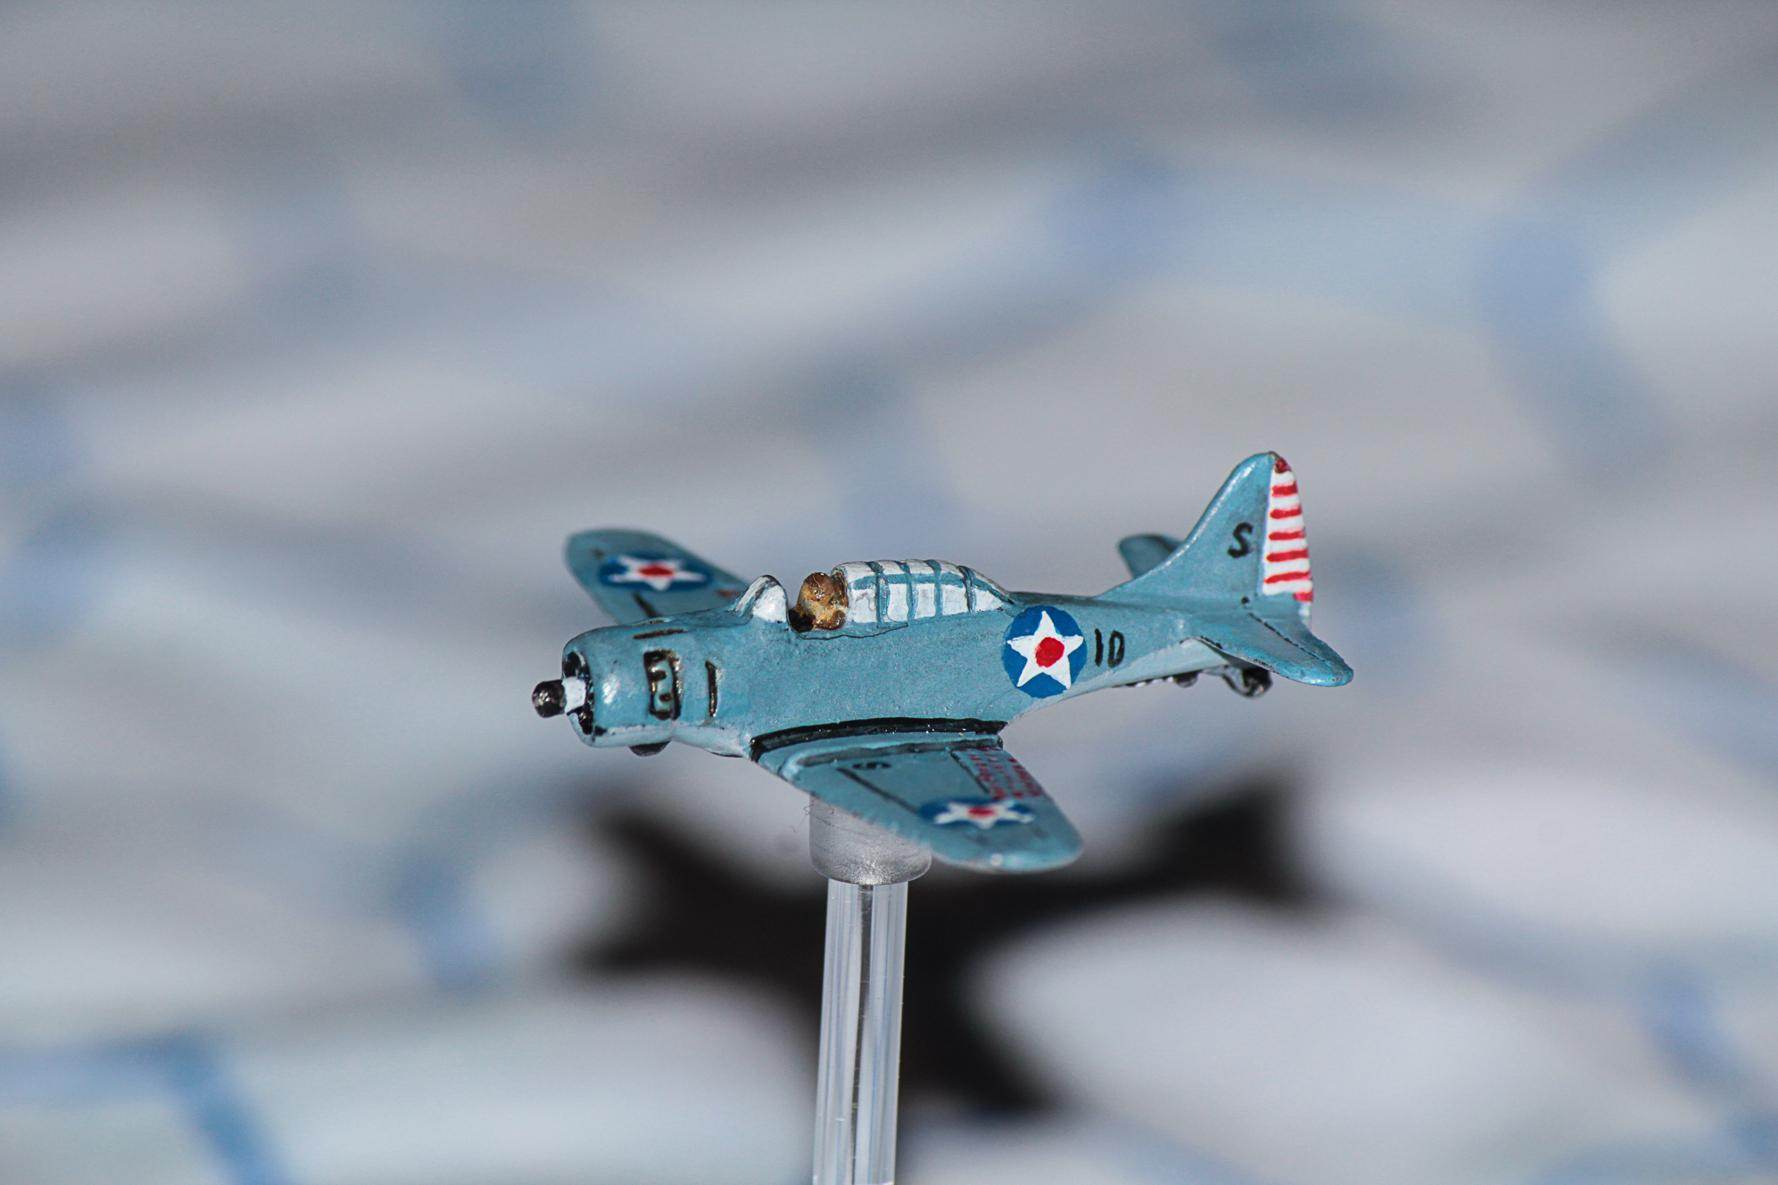 1:300, 1:300 Scale, 6mm, 6mm Scale, Air Combat, Airborne, Aircraft, Airplane, Aviation, Check Your 6!, Finland, Fliers, French, Germans, Imperial Japan, Italian, Luftwaffe, Raf, Republic Of China, Soviet, Usaaf, World War 2